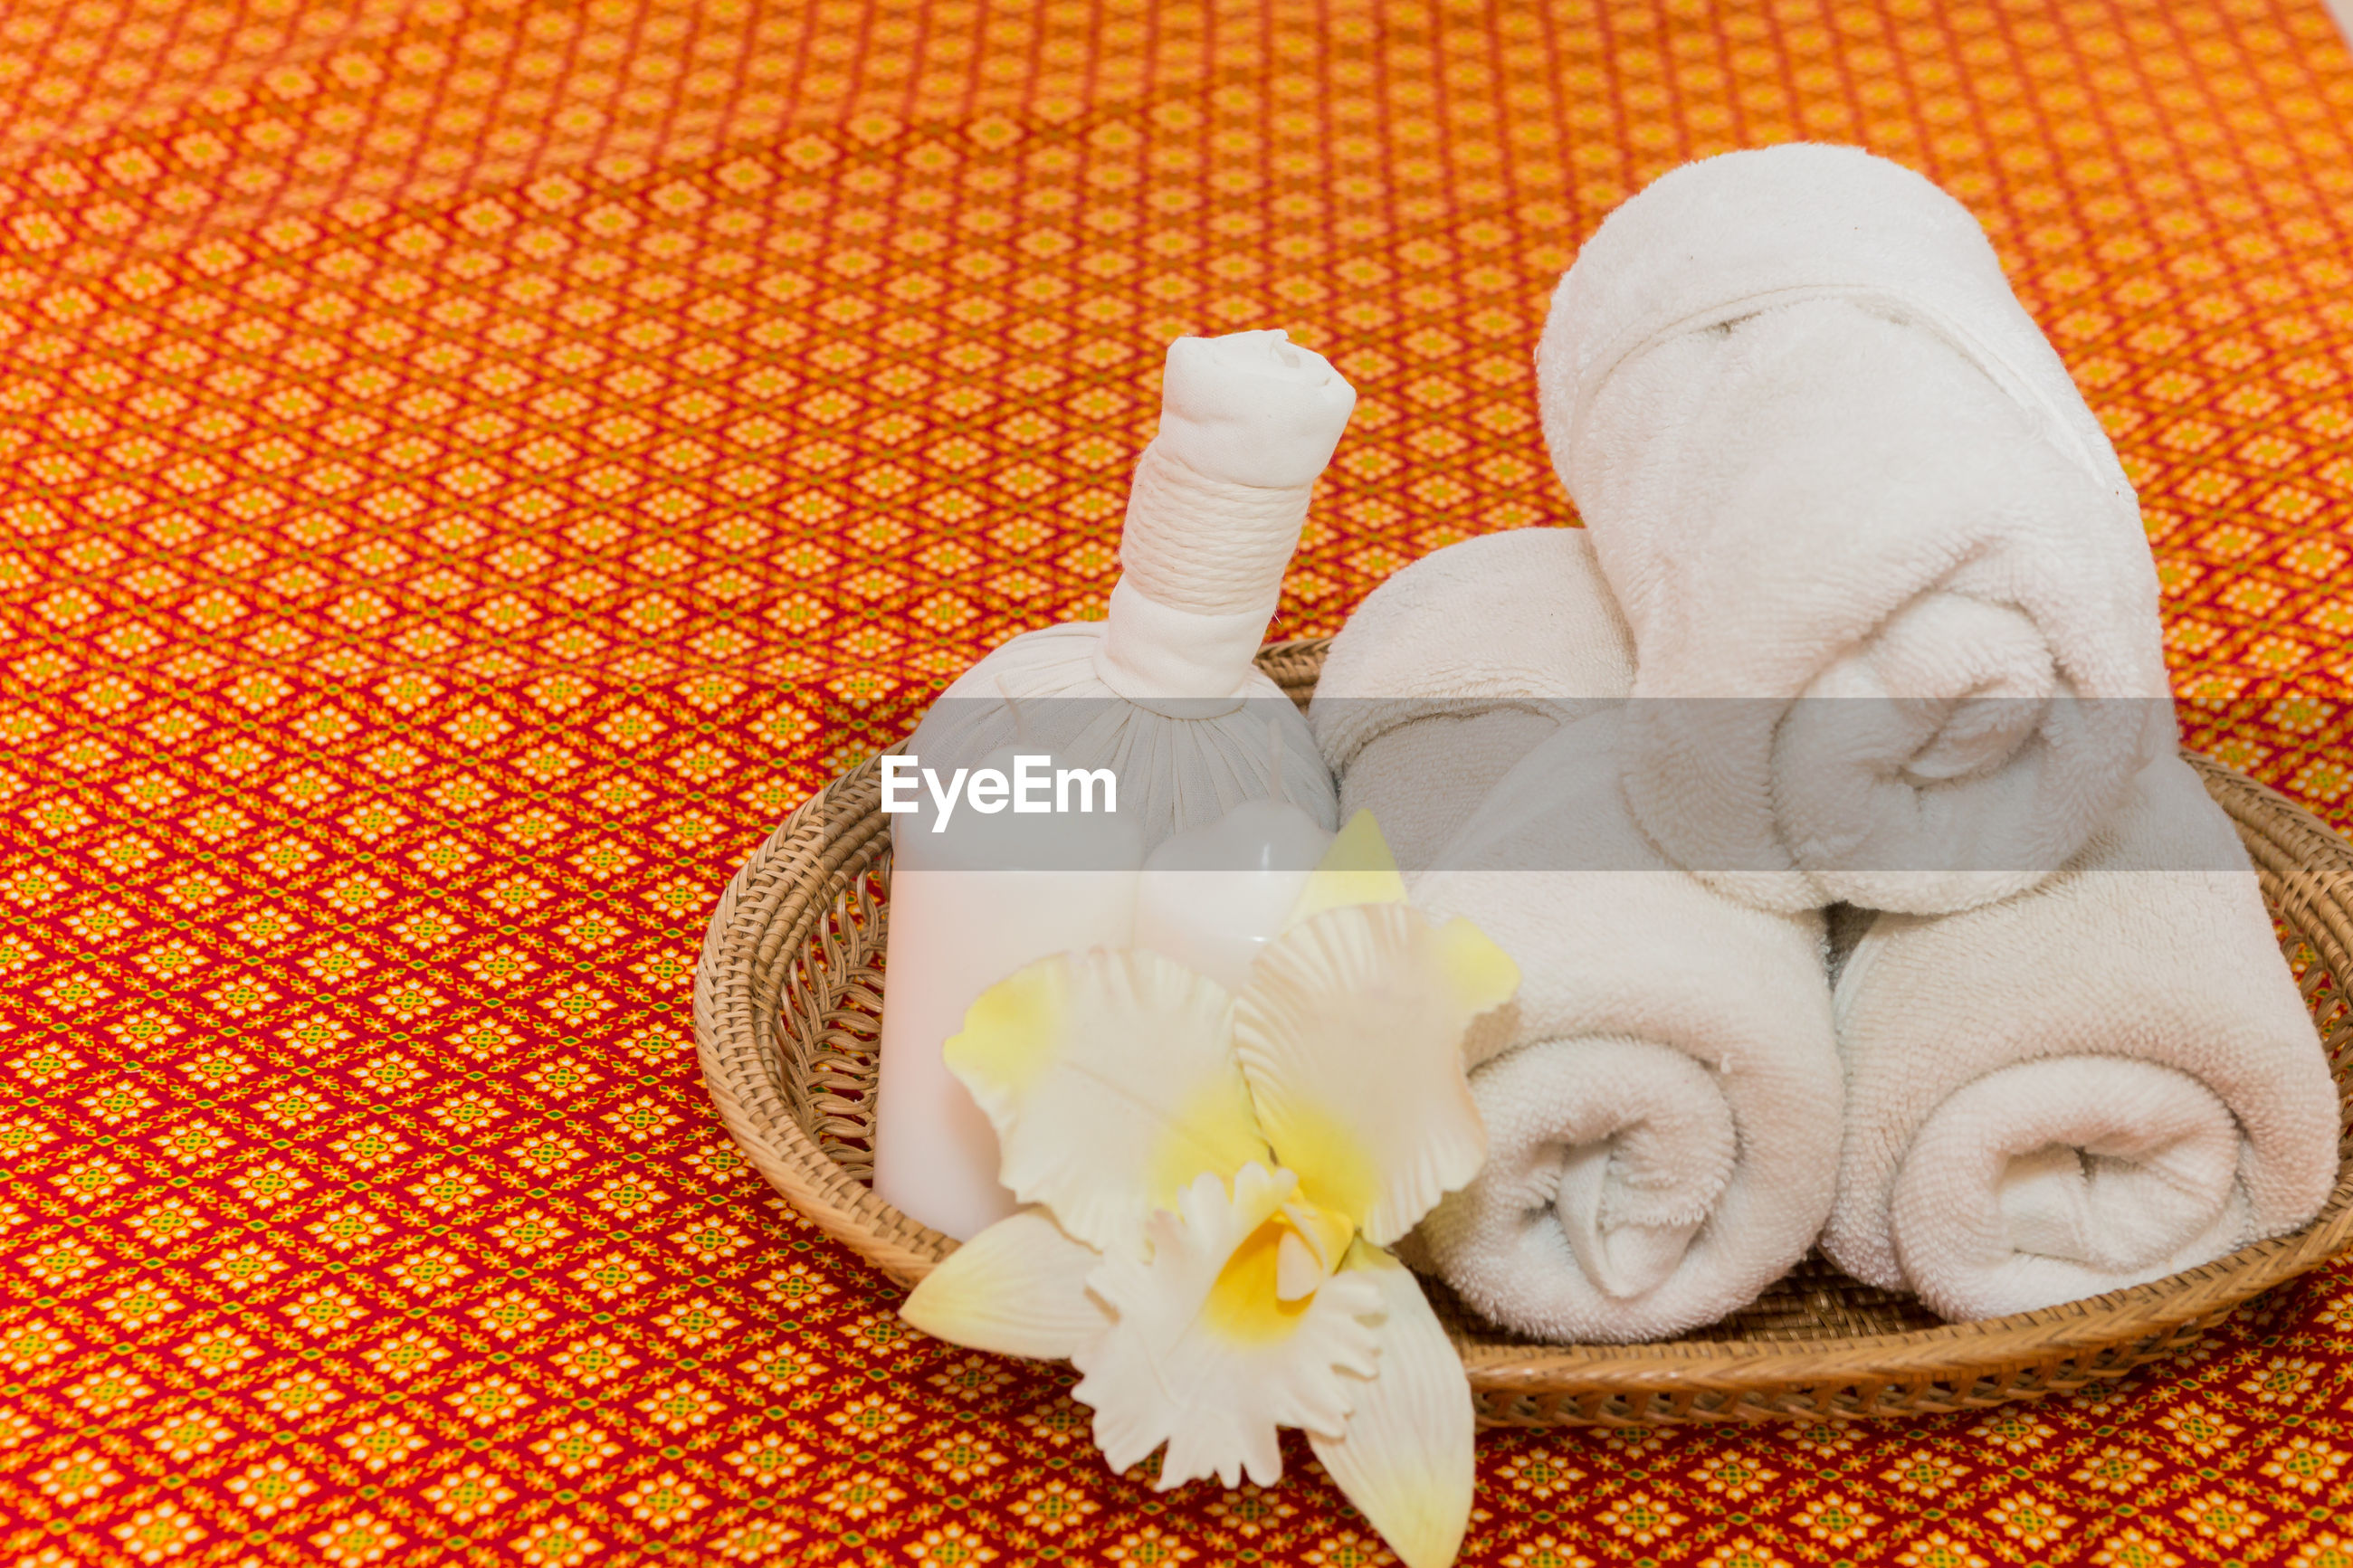 Close-up of towels and flowers on mattress